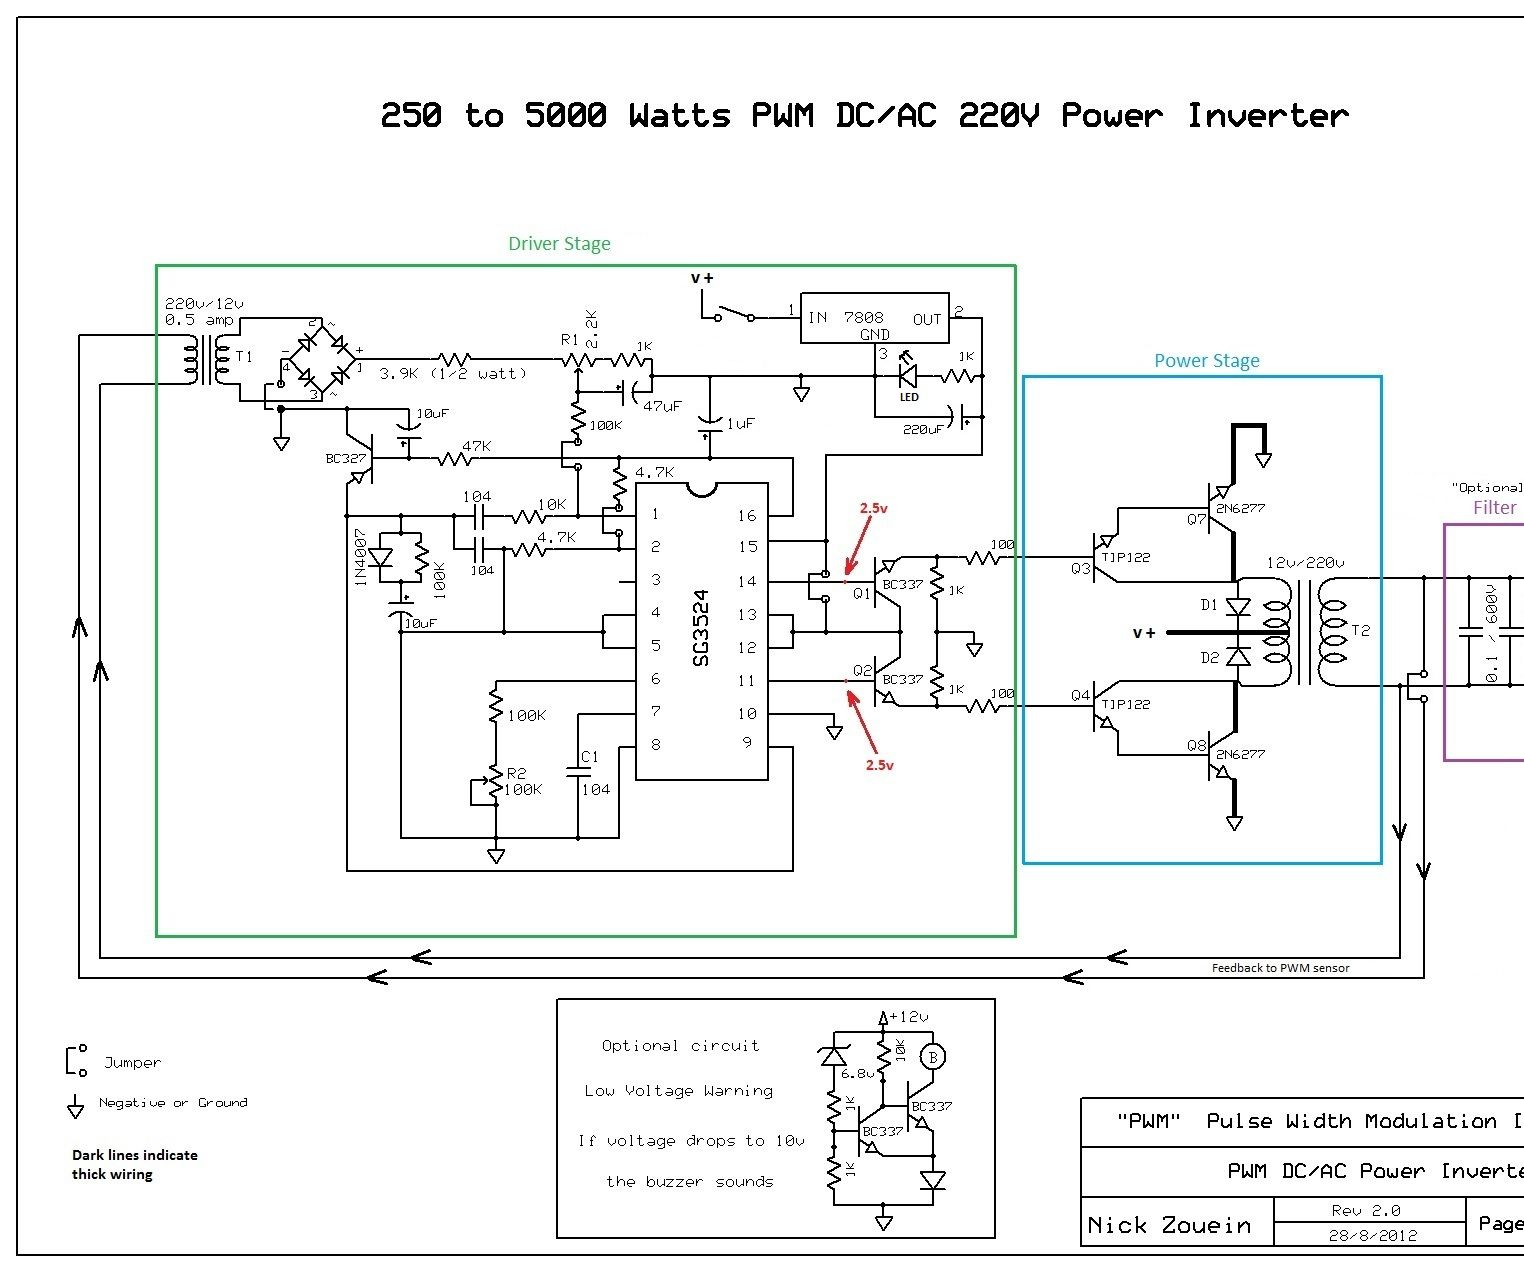 small resolution of 250 to 5000 watts pwm dc ac 220v power inverter pin 300w atx schematic diagram on pinterest